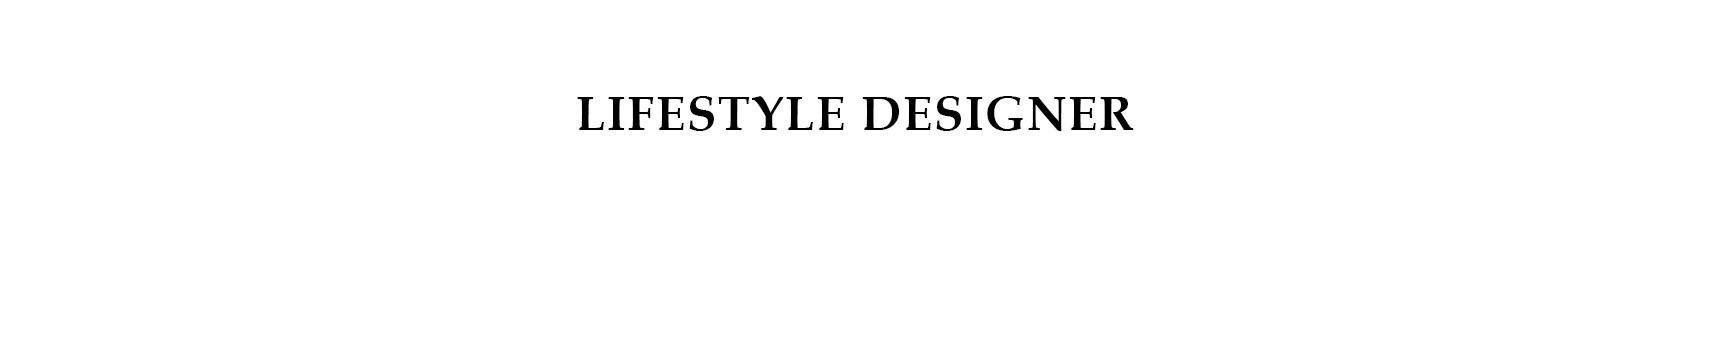 AGEMINA Lifestyle Designer | Trendy Objects & Accessories Selection